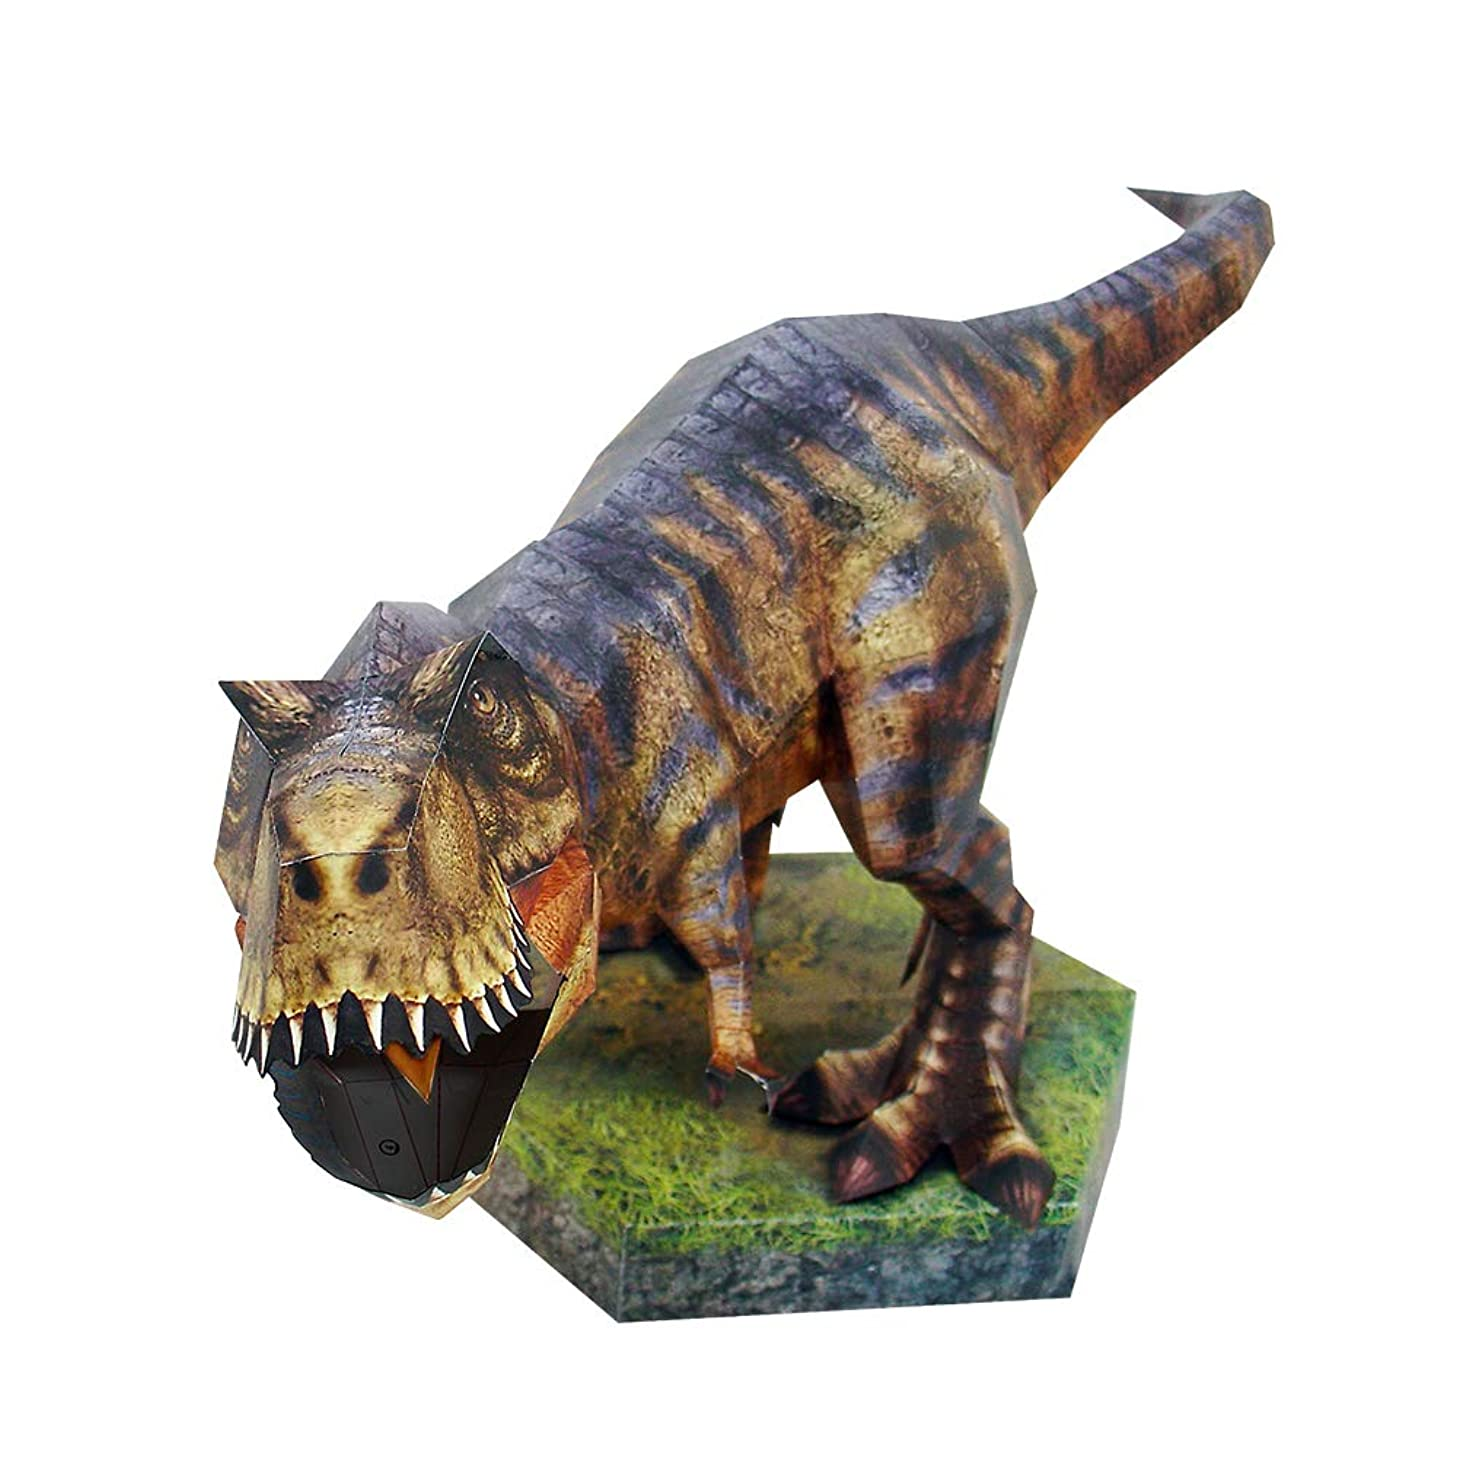 HAPPYPAPER Dinosaur Tyrannosaurs Low Poly DIY Papercraft Puzzle Kit for Adults & Teens - NO Scissors Needed